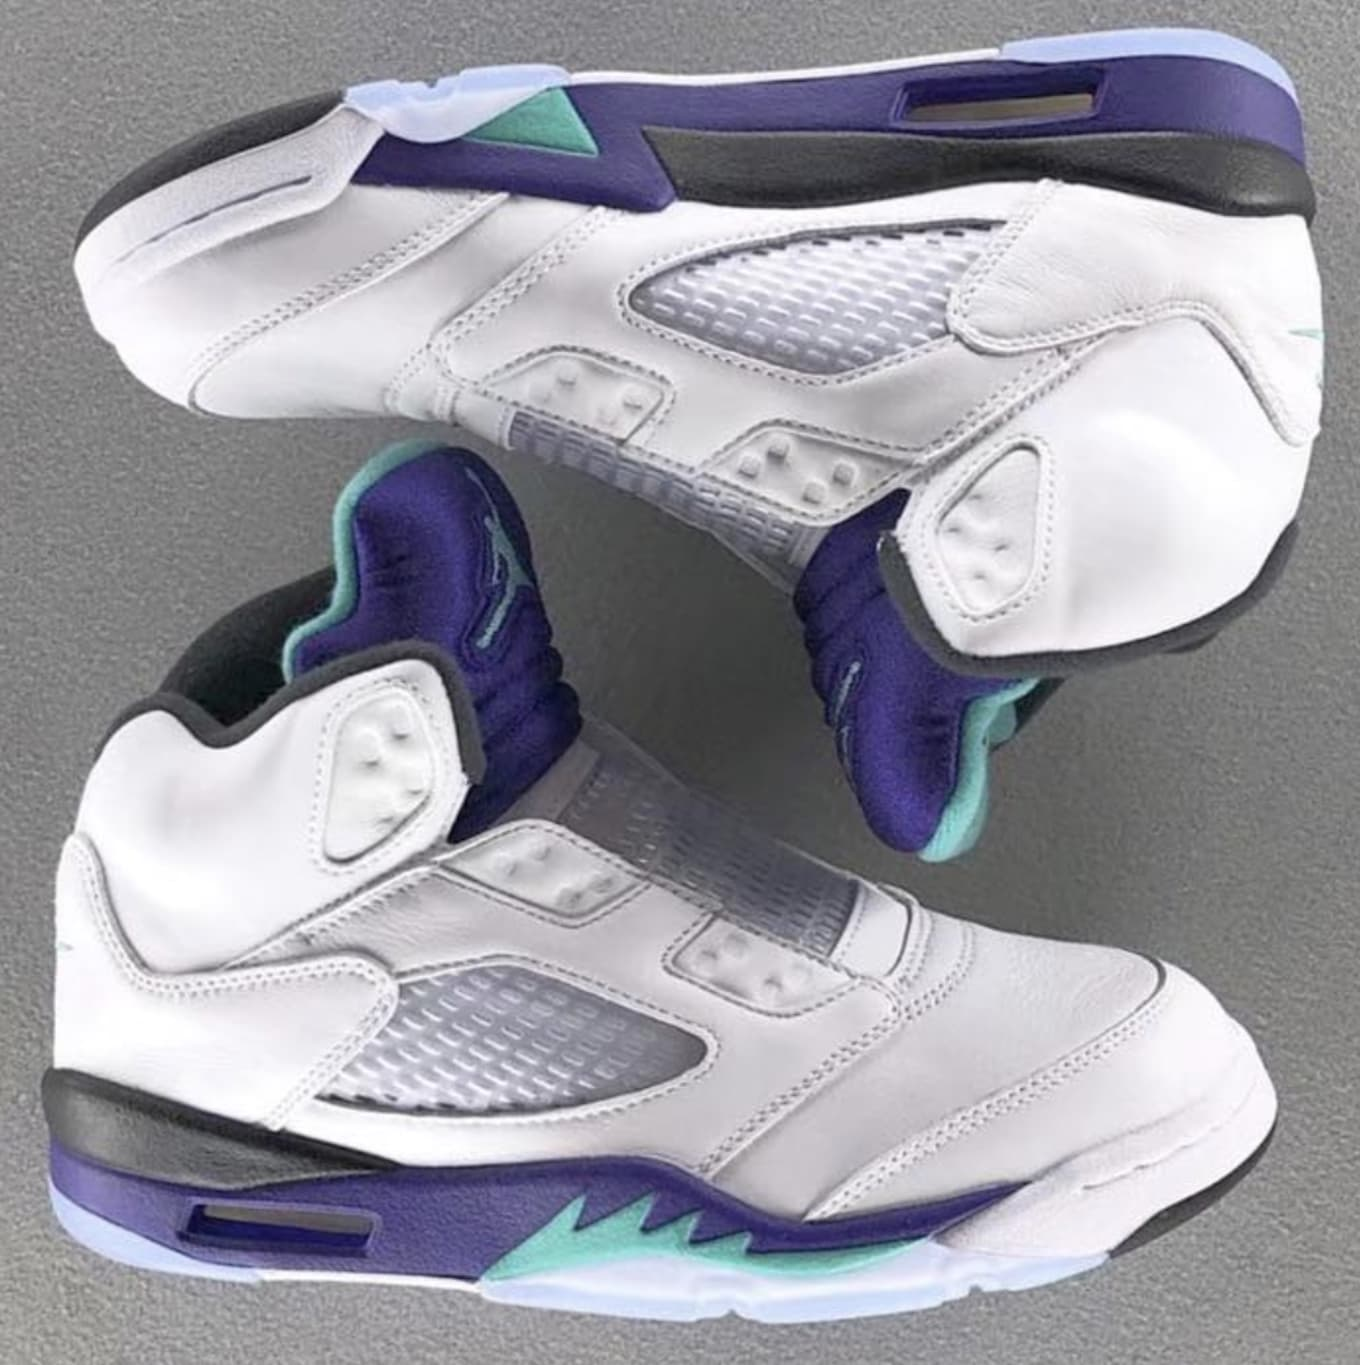 new styles dad7d 15a9a Air Jordan V 5 Retro NRG 'White/Grape Ice/Black/New Emerald ...